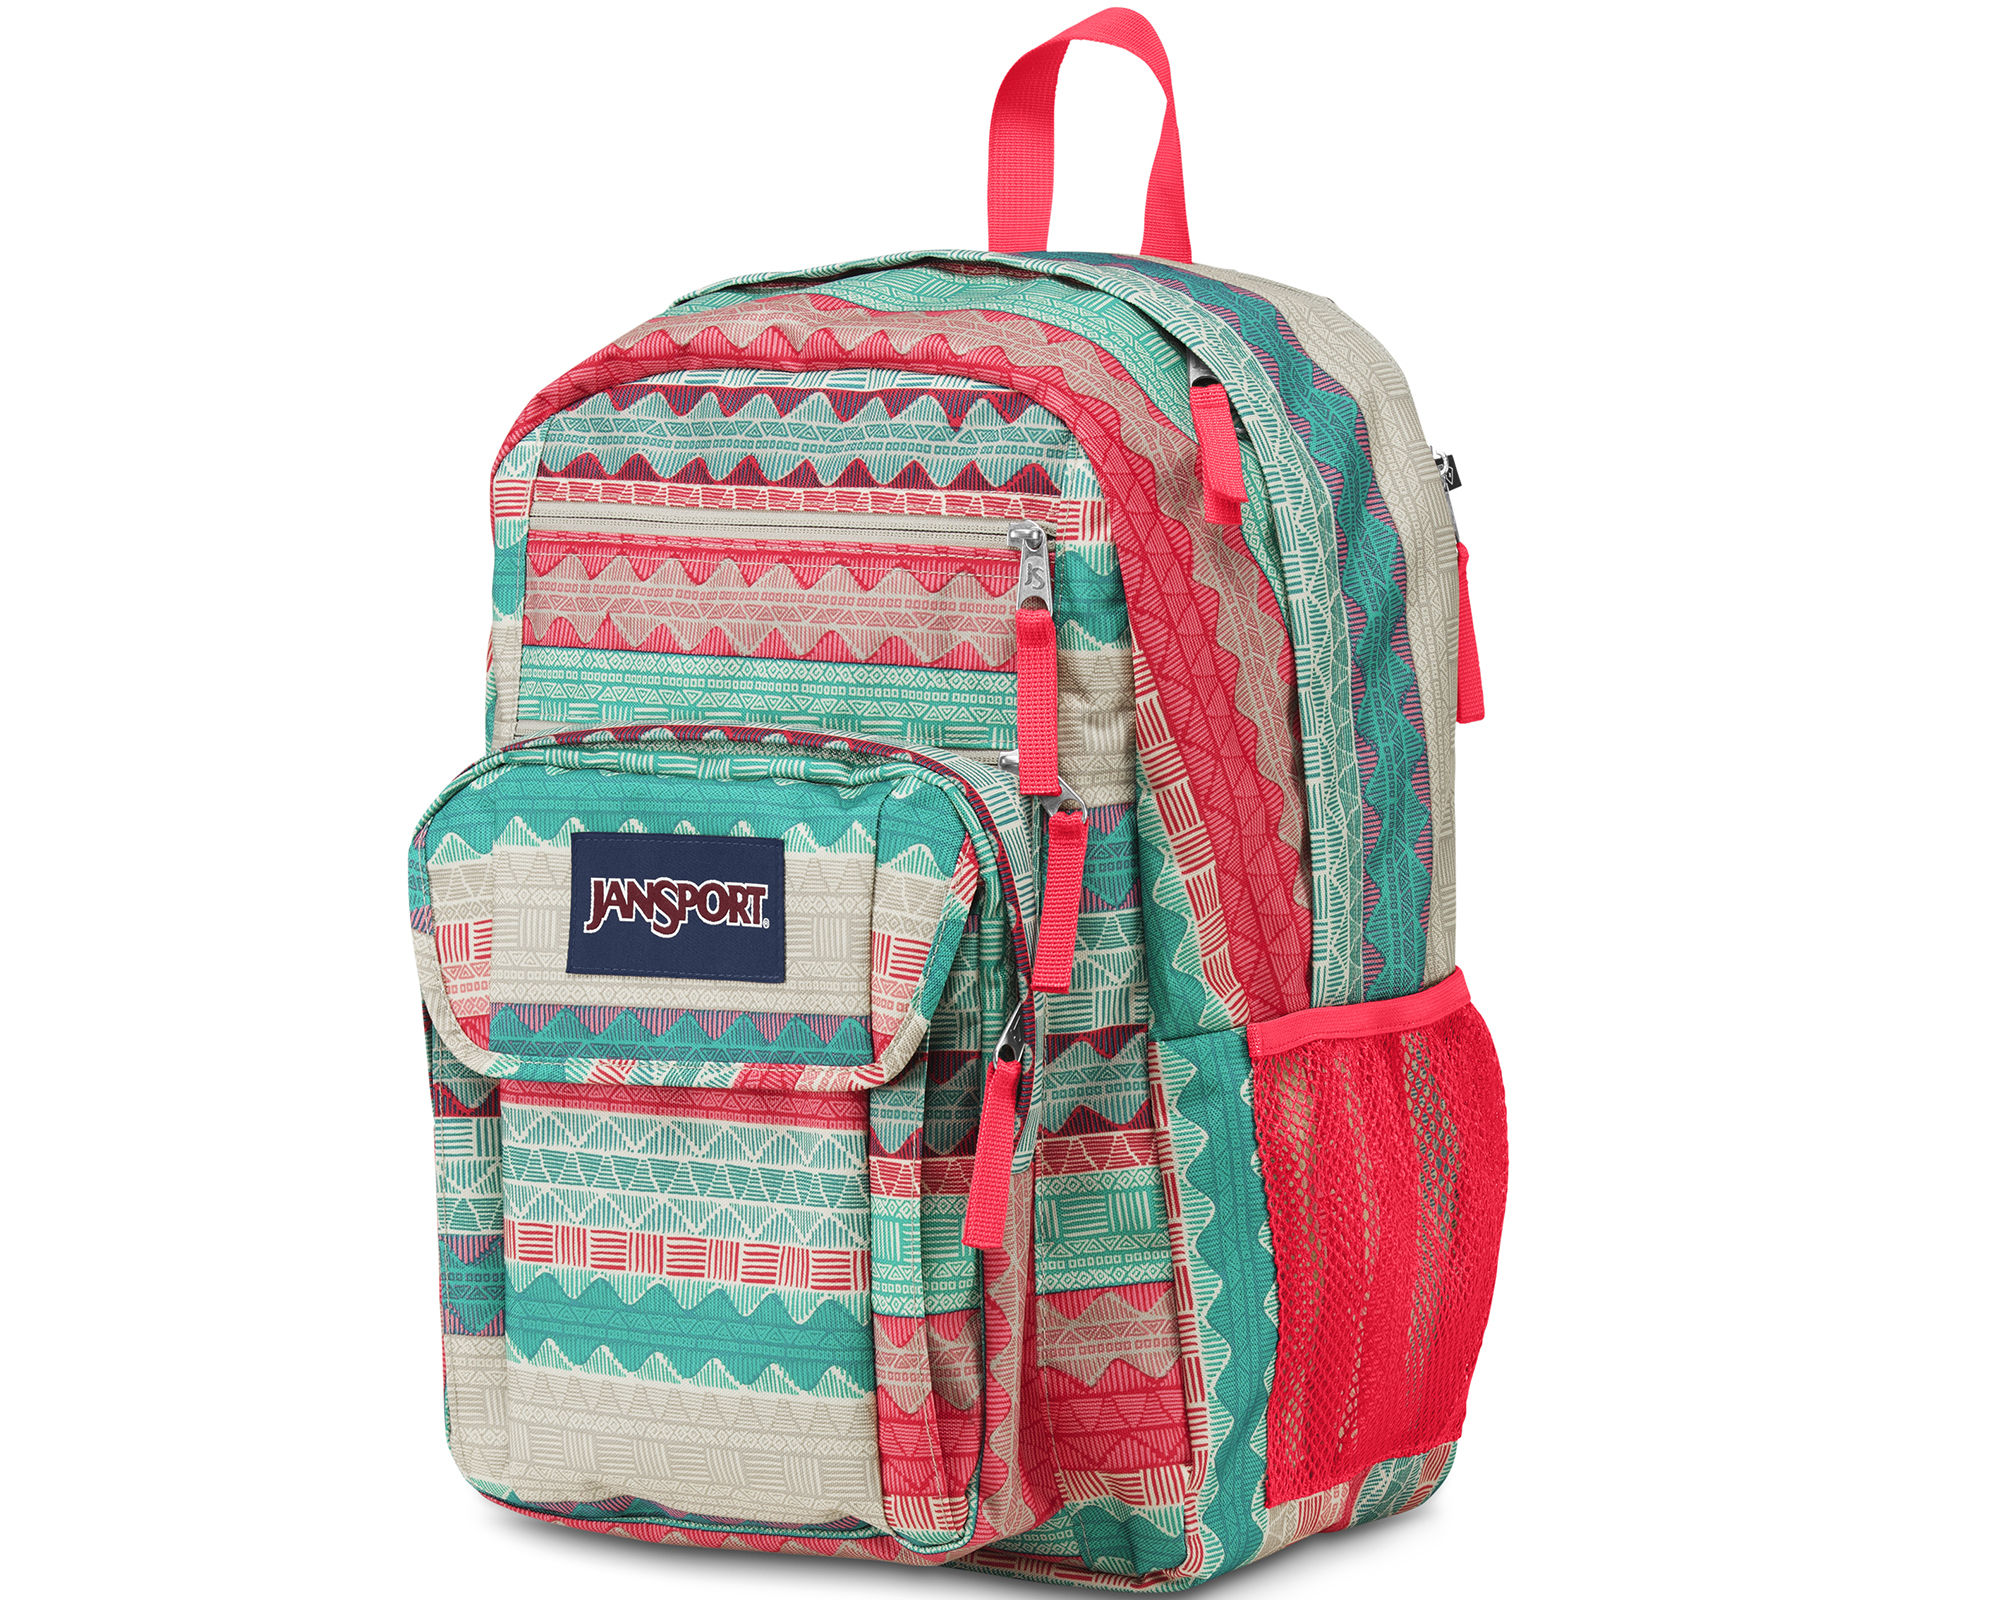 Jansport Digital Big Student Backpack - Crazy Backpacks